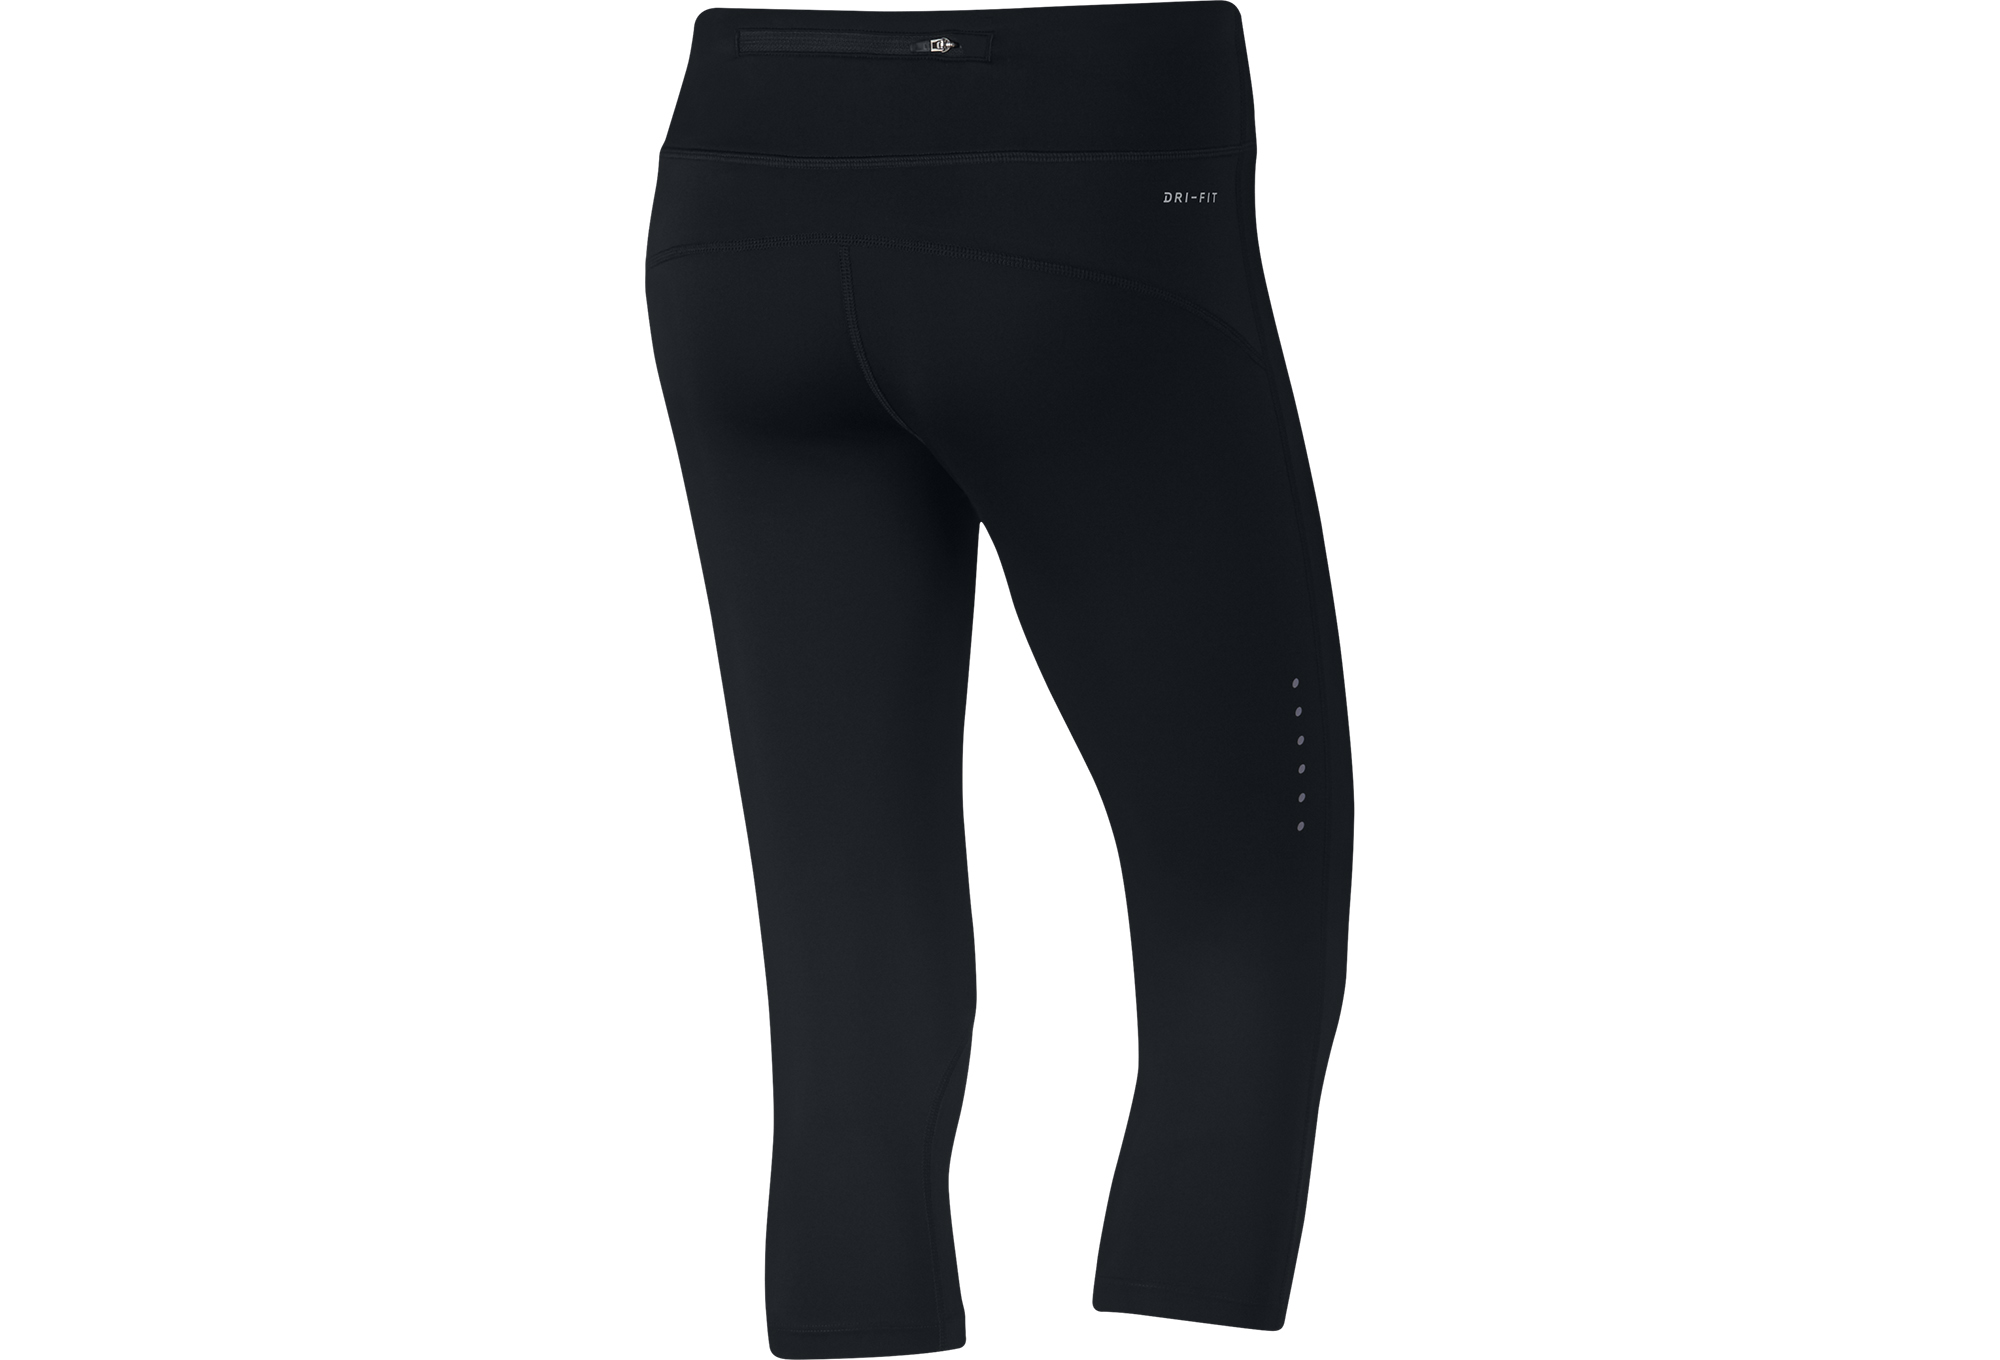 Nike Women's Epic Lux Tight